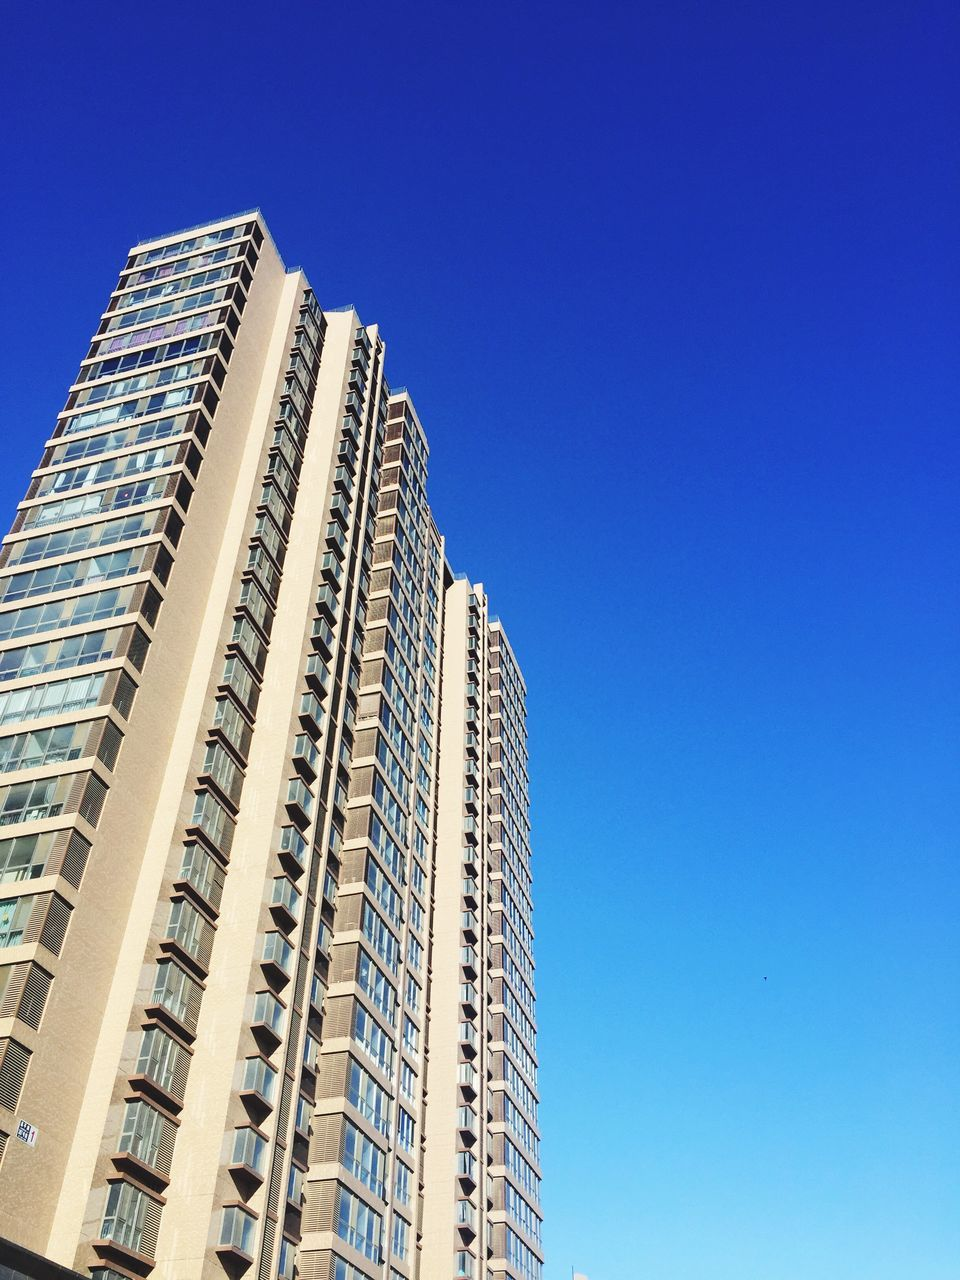 architecture, low angle view, built structure, skyscraper, building exterior, modern, blue, copy space, development, clear sky, window, city, apartment, day, no people, outdoors, cityscape, sky